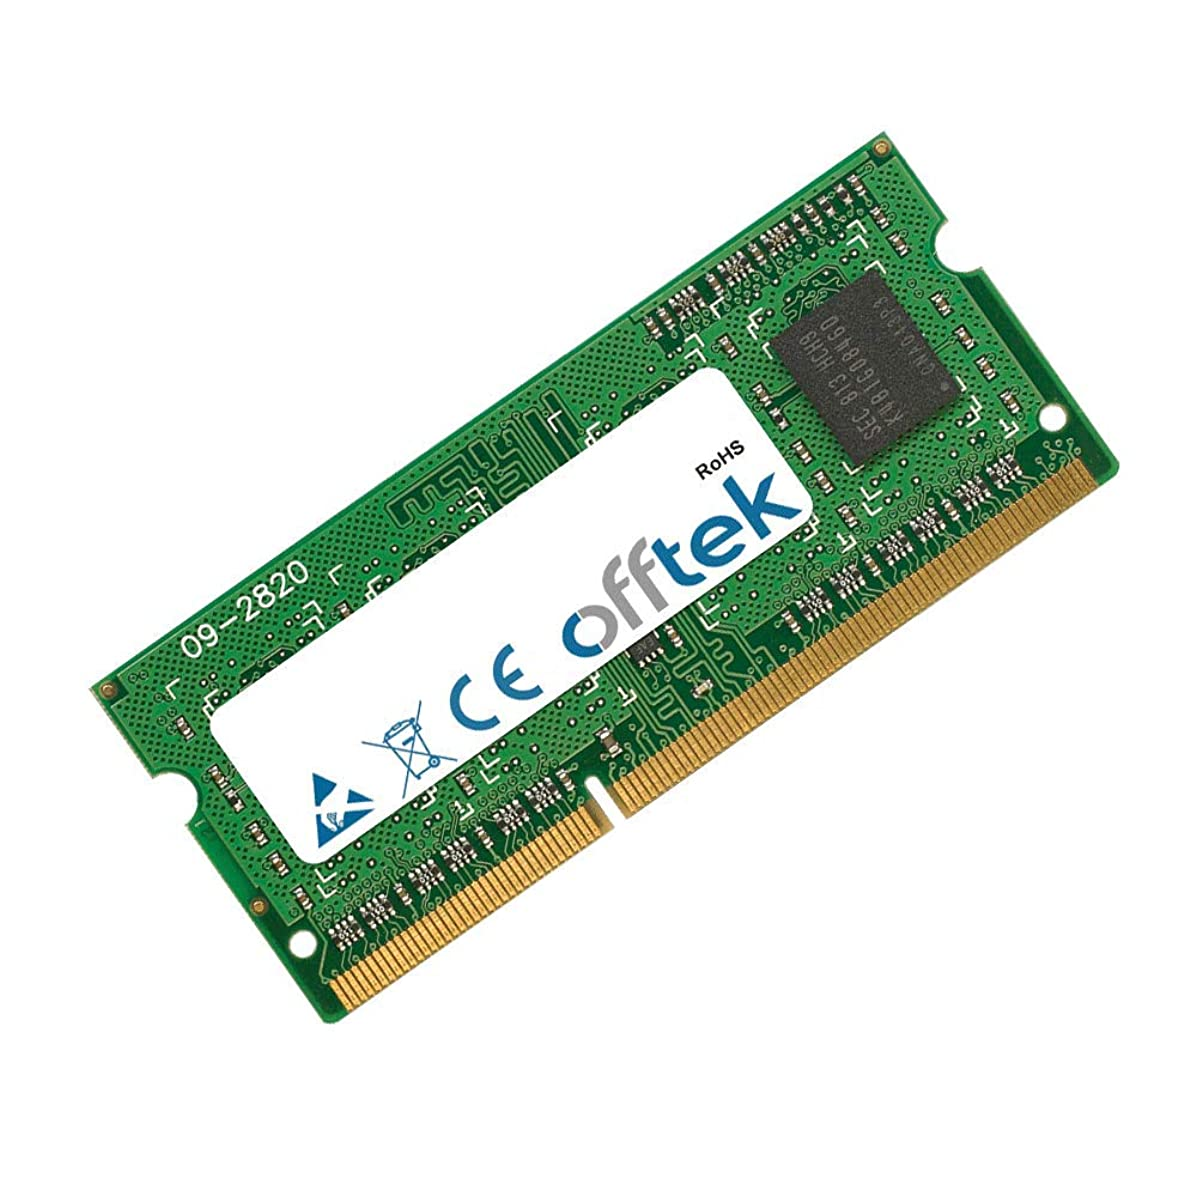 2GB RAM Memory for Toshiba Satellite T135-S1309 (DDR3-8500) - Laptop Memory Upgrade